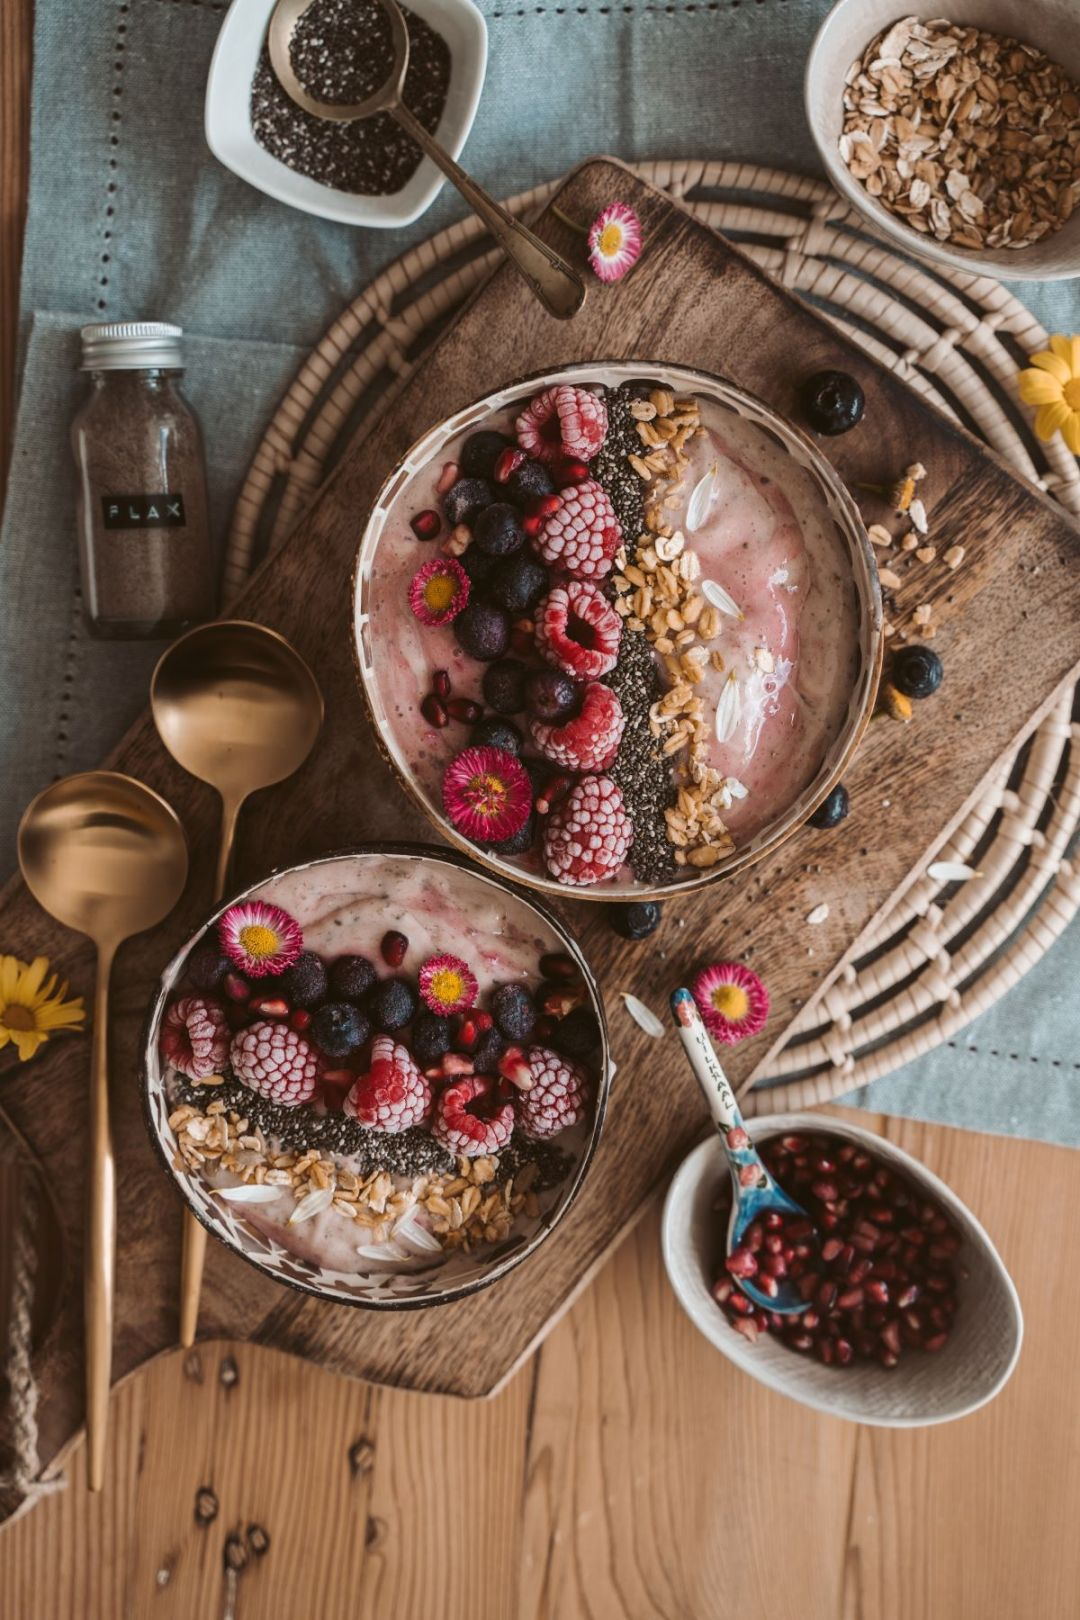 smoothie bowl for mother's day breakfast idea